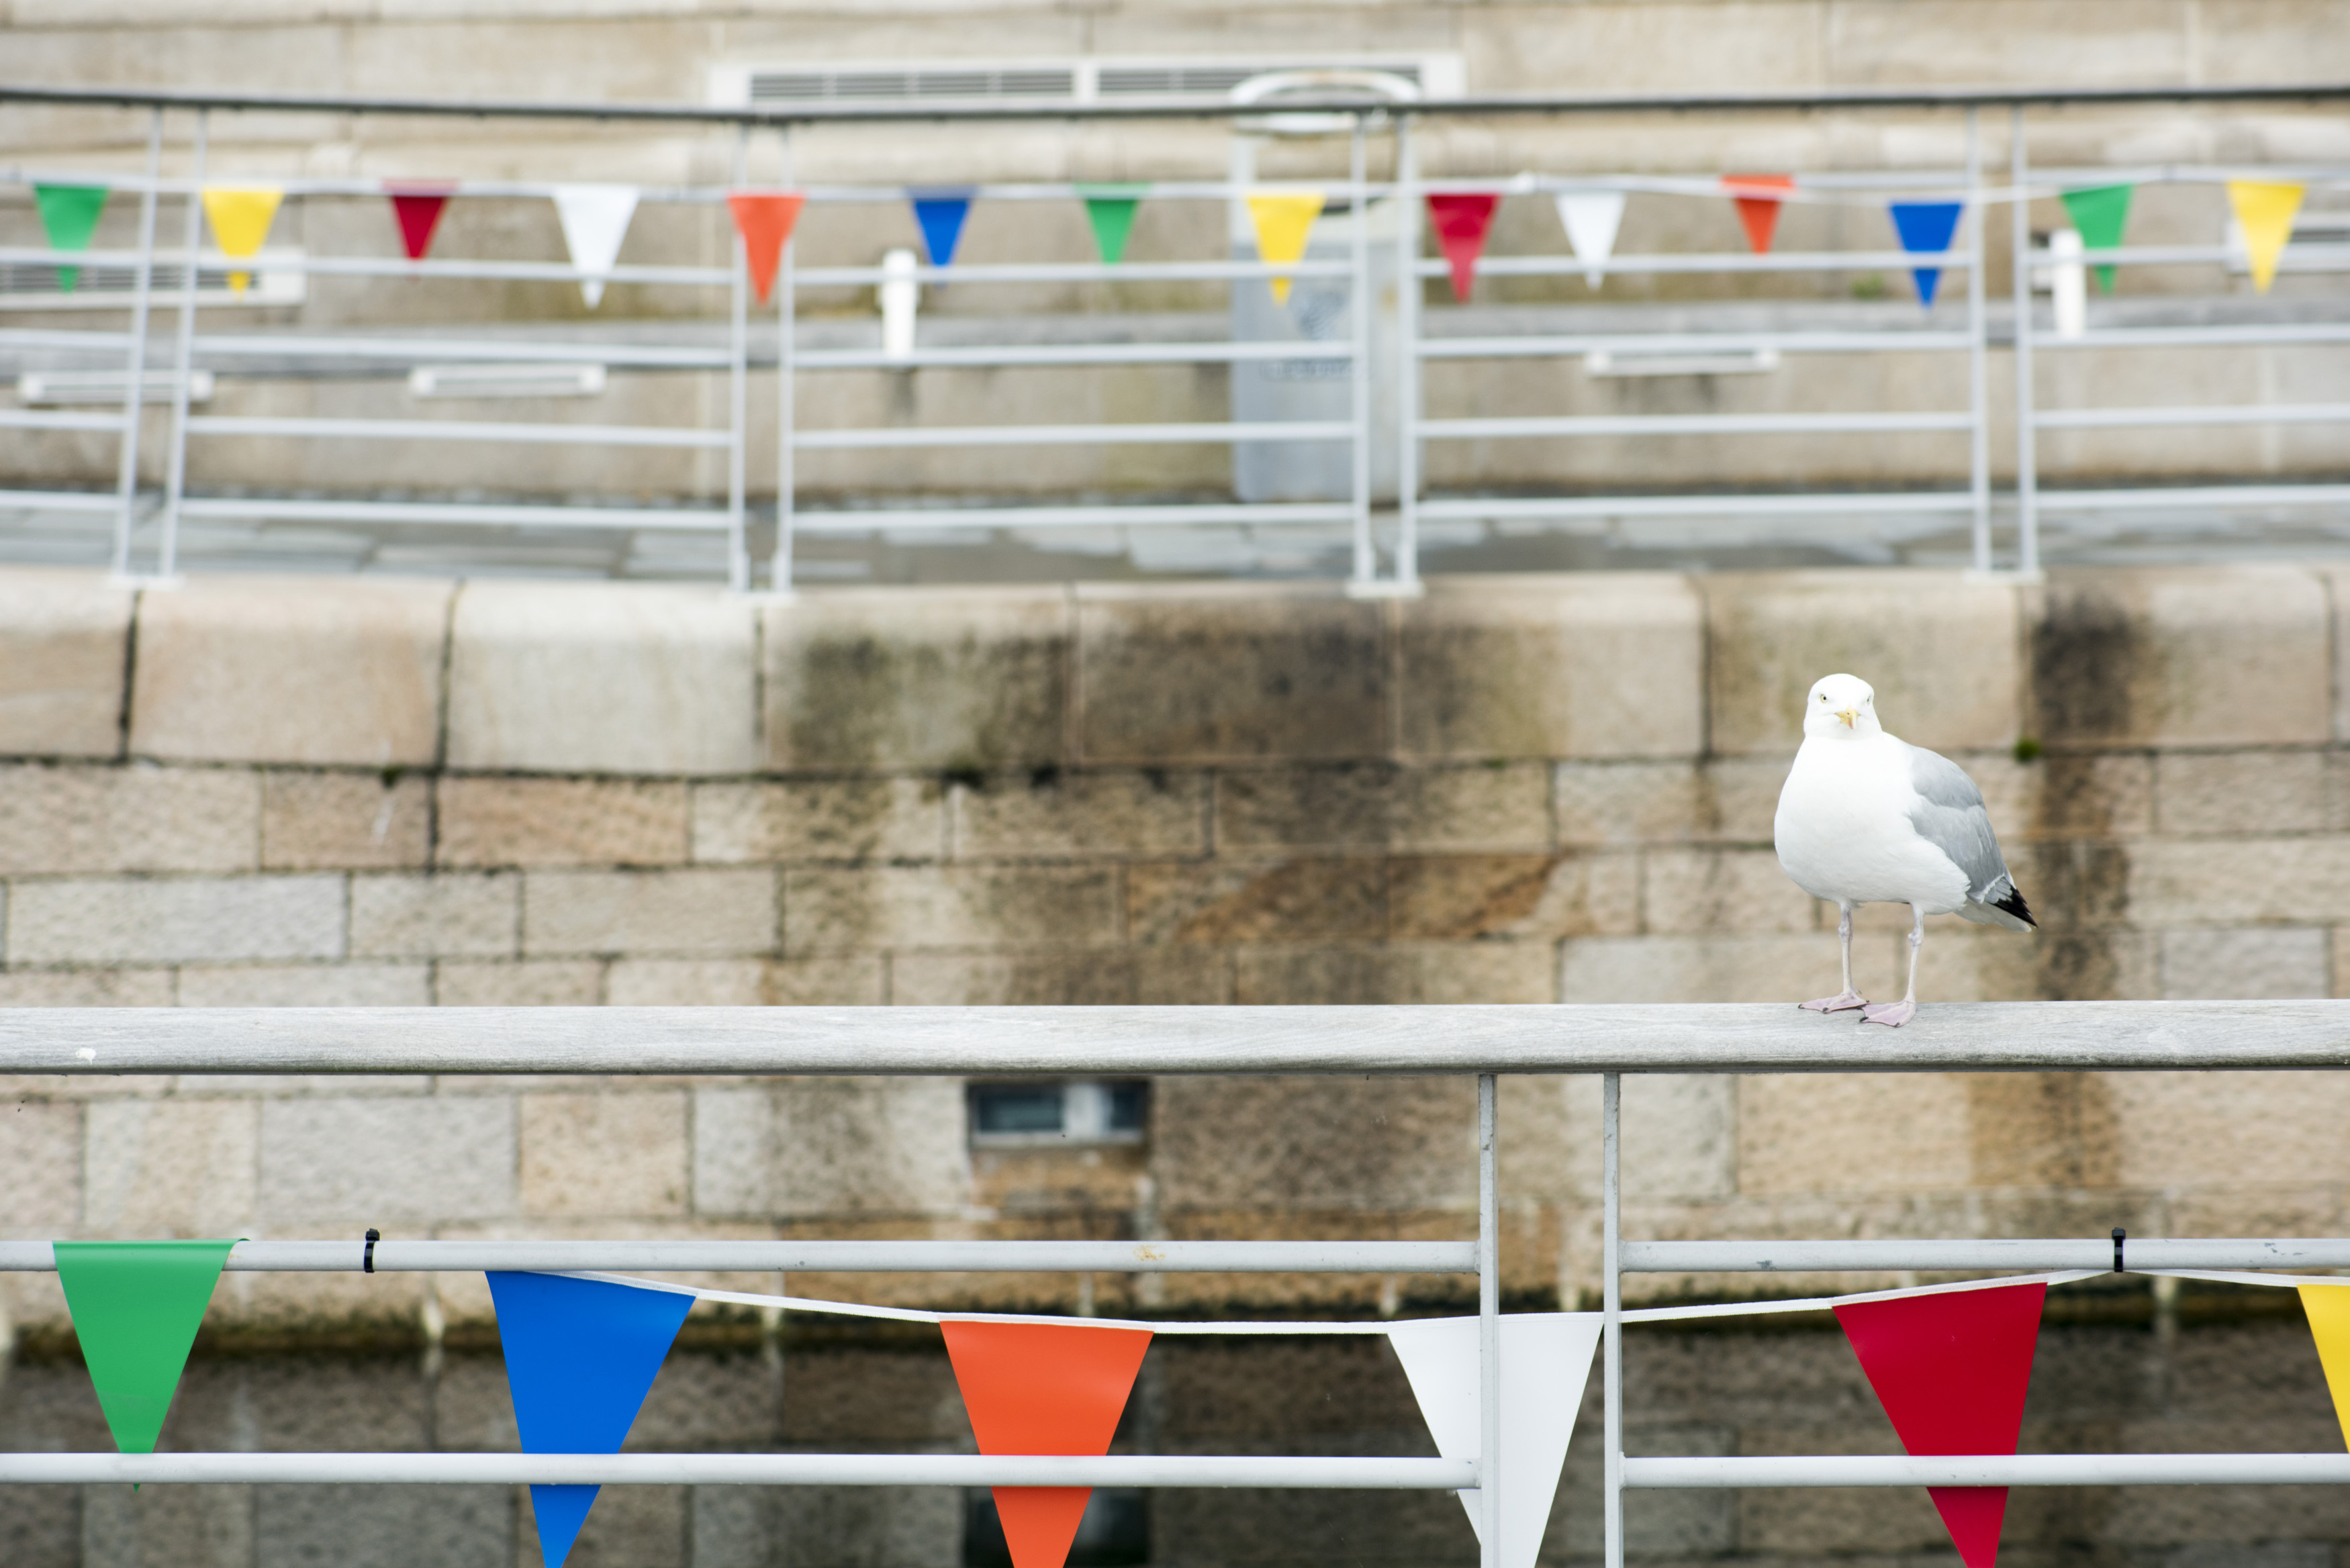 Single large seagul perched on railing at boat dock in Liverpool, United Kingdom